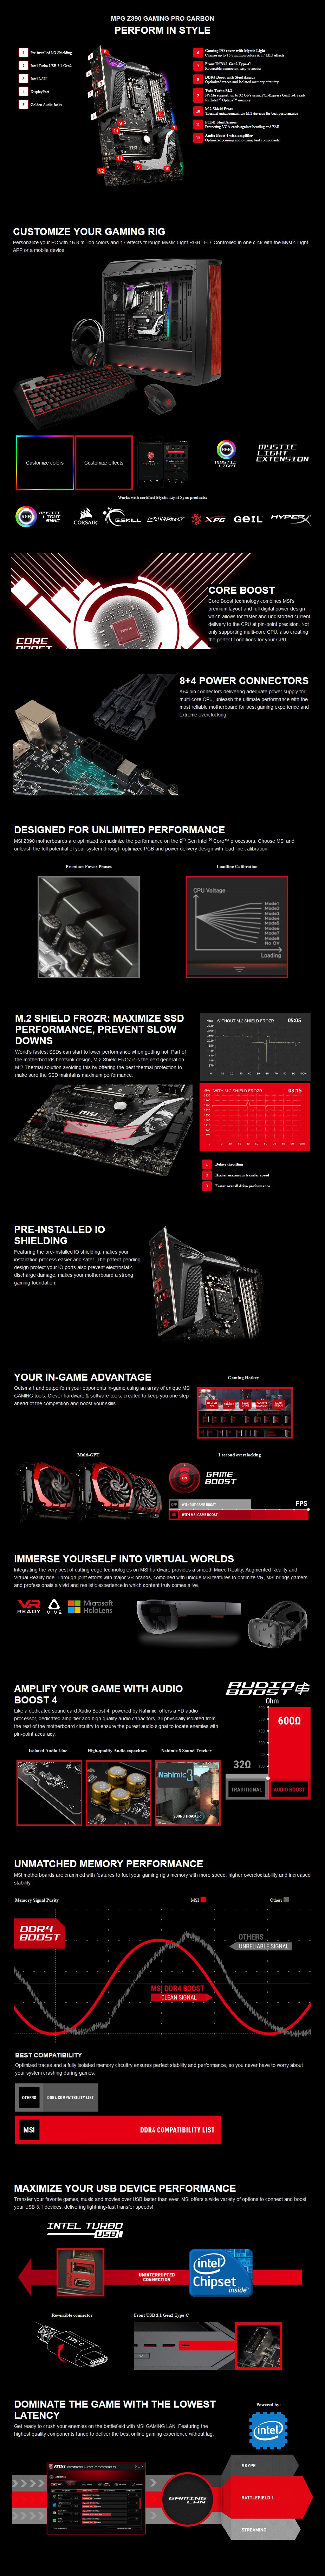 MSI MPG Z390 GAMING PRO CARBON LGA 1151 ATX Motherboard - Desktop Overview 1